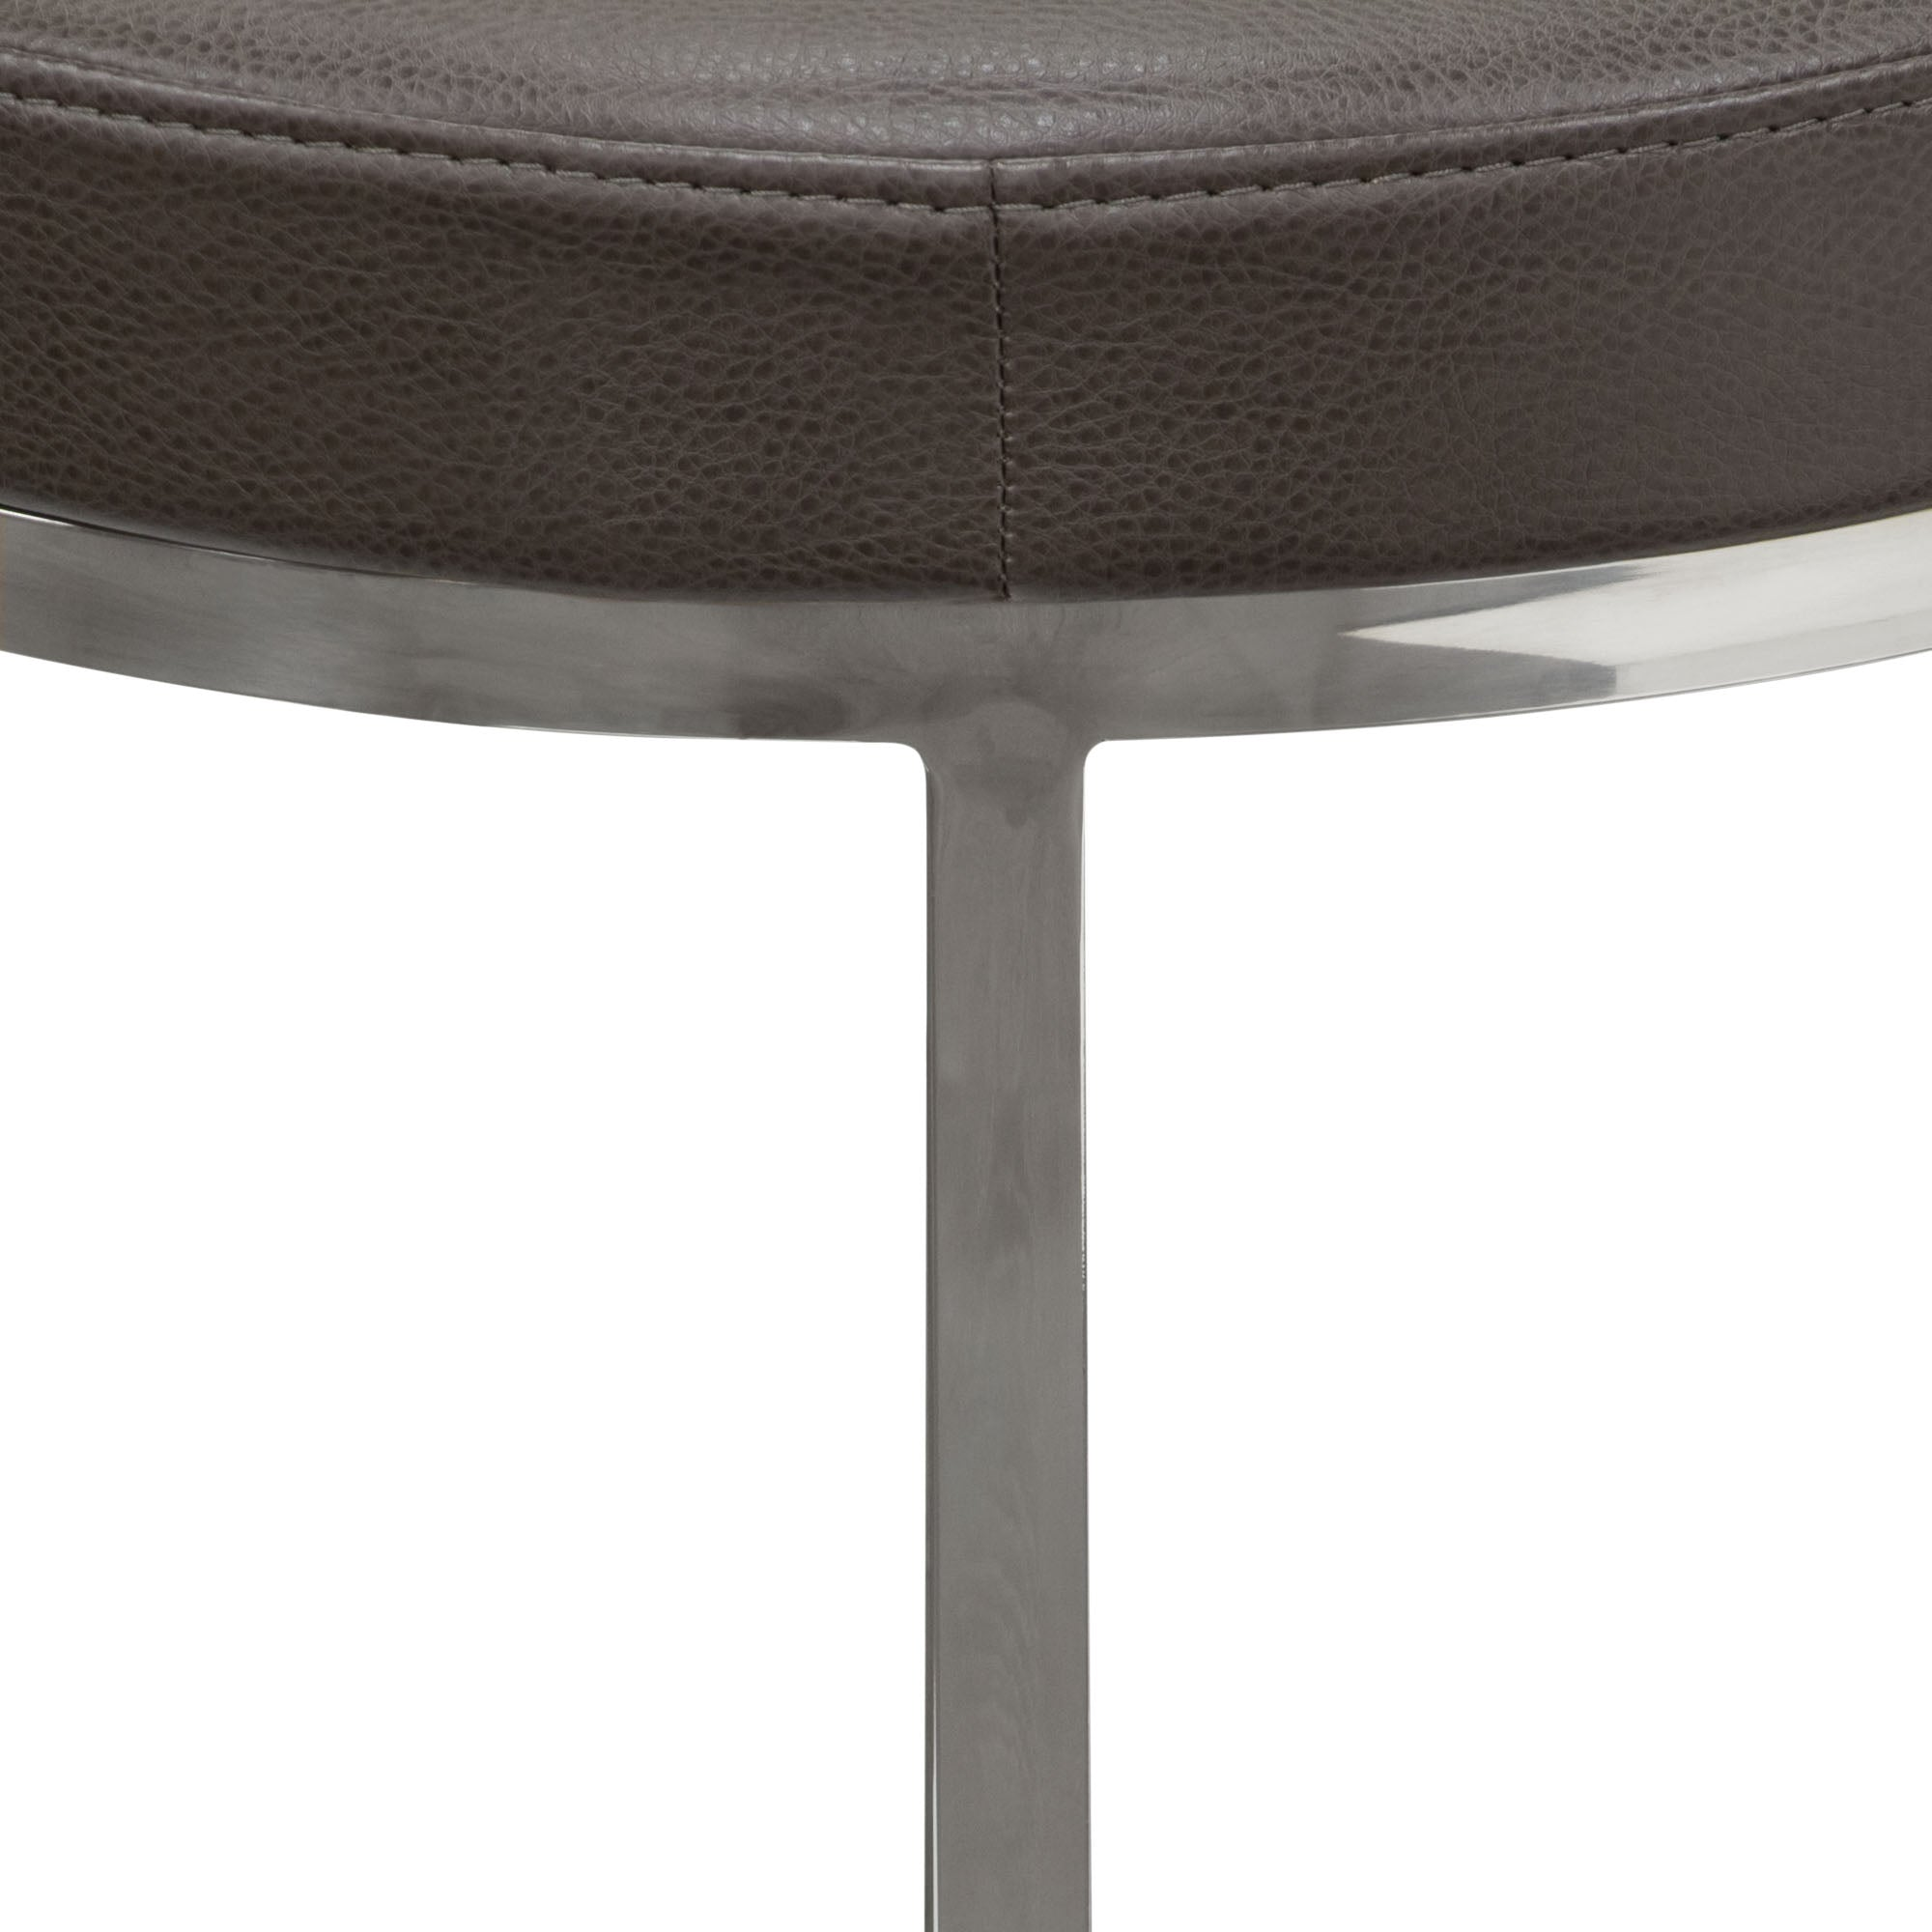 Ritz Round Accent Stool - Elephant Grey